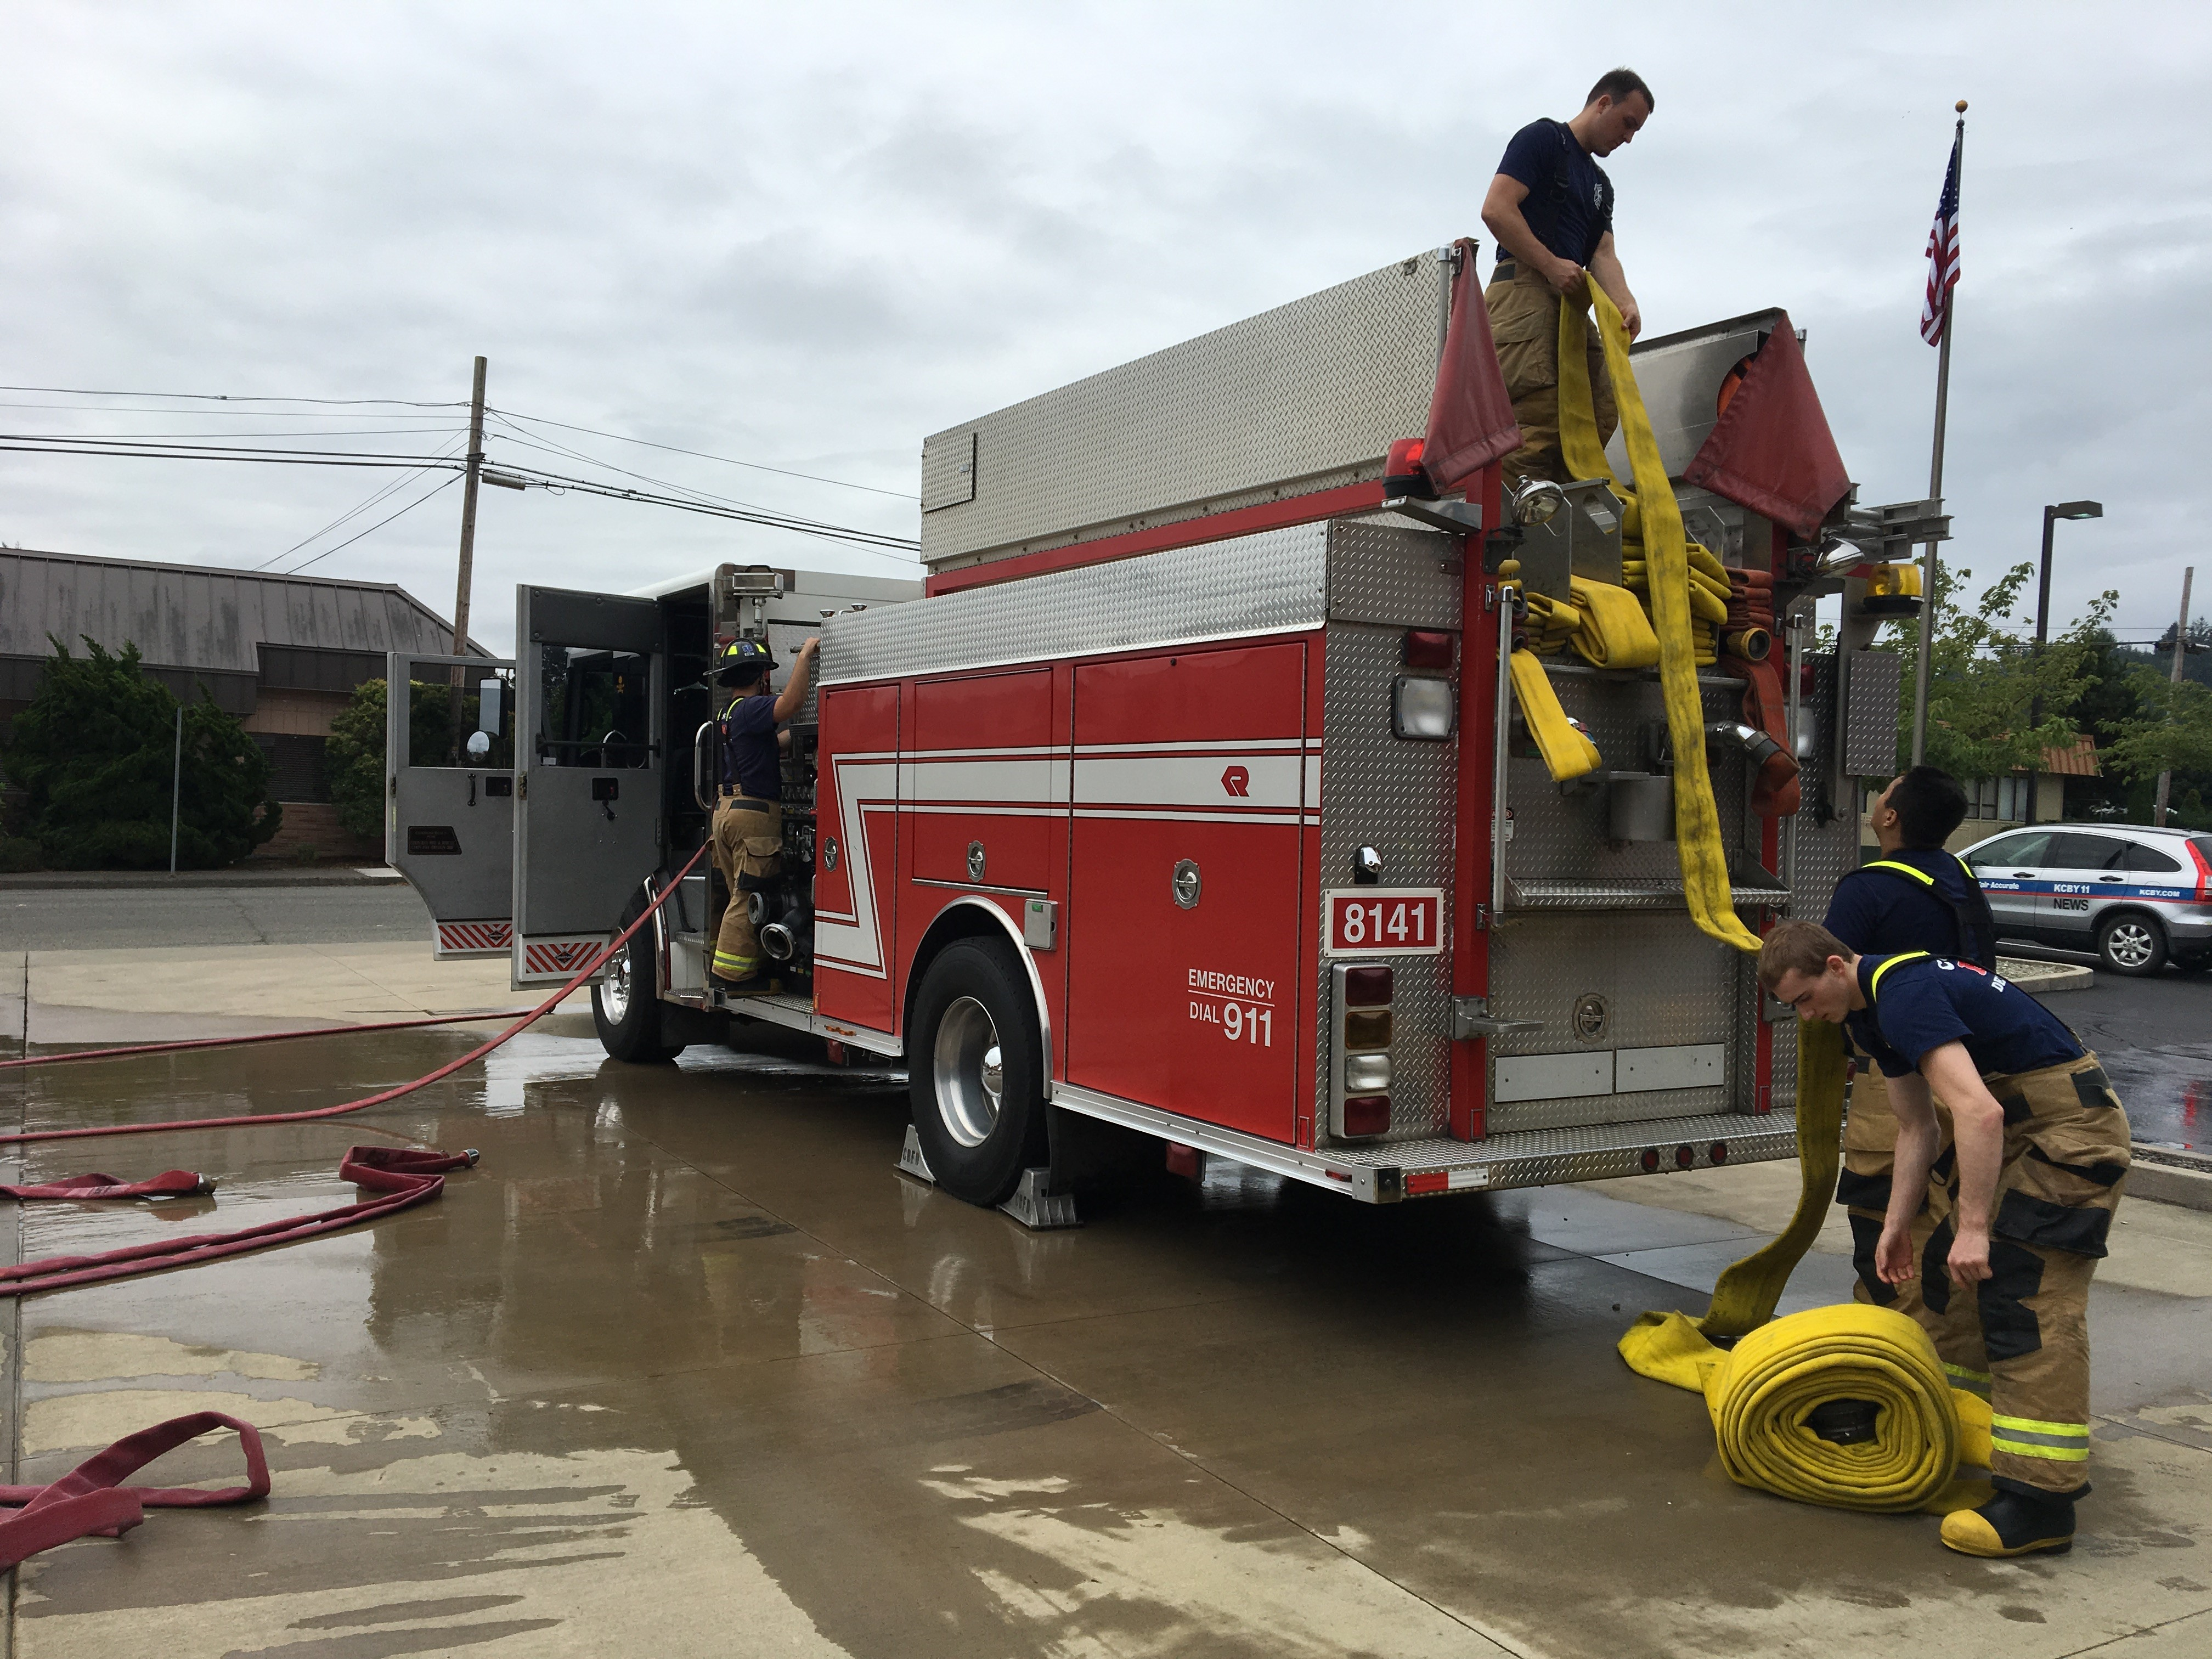 Emergency services academy at Coos Bay Fire Department, Sept. 8, 2017. (SBG)